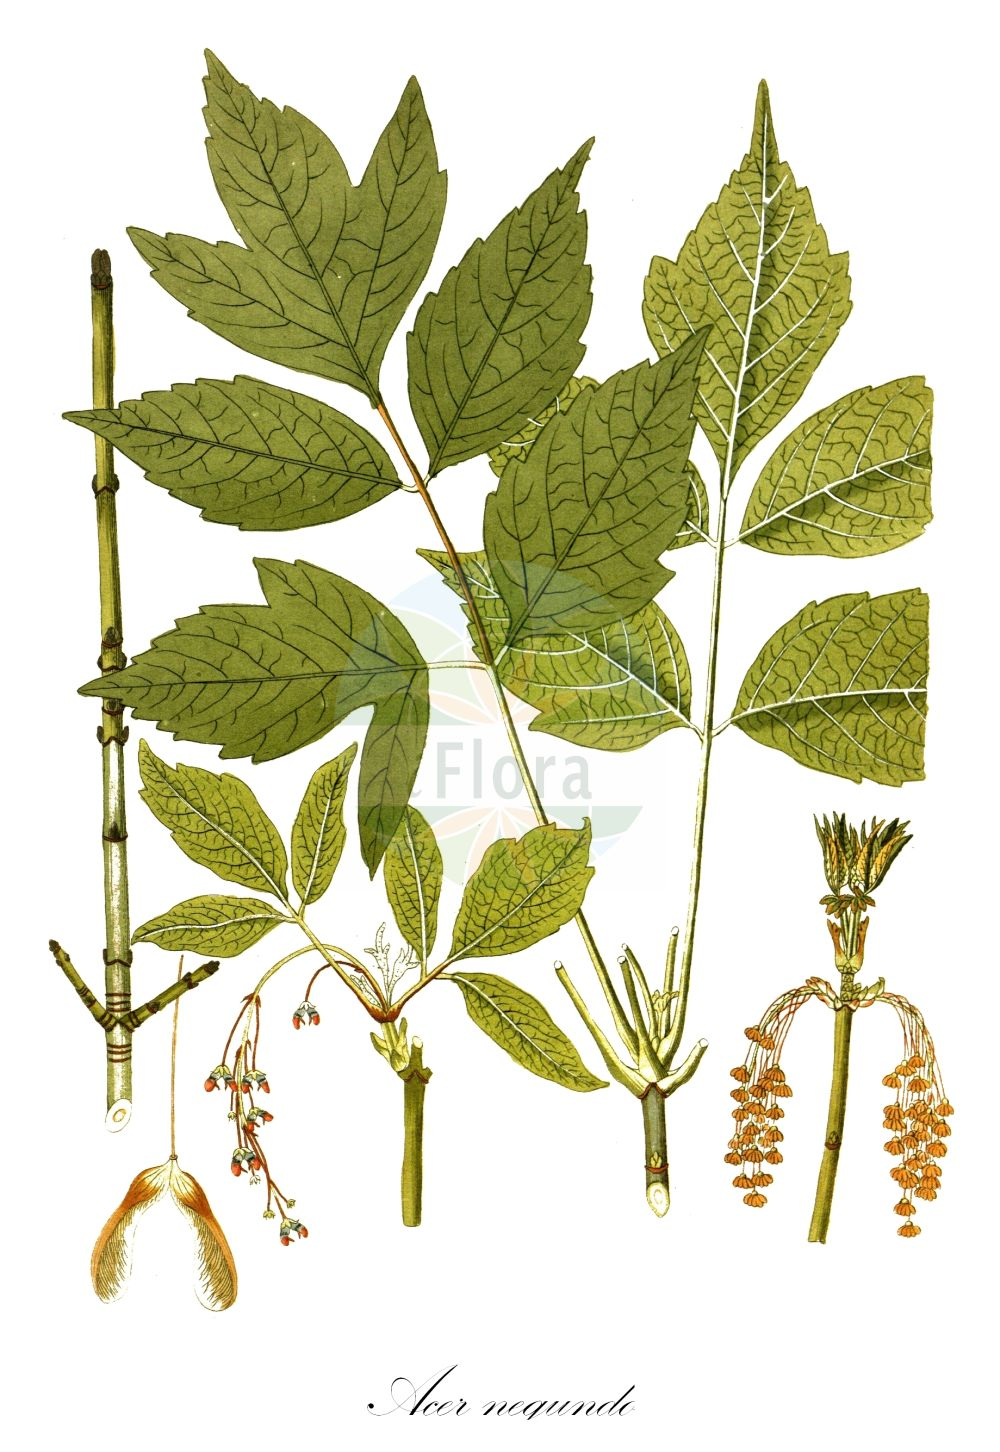 Historische Abbildung von Acer negundo (Eschen-Ahorn - Ashleaf Maple). Das Bild zeigt Blatt, Bluete, Frucht und Same. ---- Historical Drawing of Acer negundo (Eschen-Ahorn - Ashleaf Maple).The image is showing leaf, flower, fruit and seed. (Acer negundo,Eschen-Ahorn,Ashleaf Maple,Negundo aceroides,Negundo fraxinifolium,Water Ash,Black Ash,Boxelder,Cutleaf Maple,Maple Ash,Red River Maple,Ash-leaved Maple,Manitoba Maple,Acer,Ahorn,Maple,Sapindaceae,Seifenbaumgewaechse,Soapberry family,Blatt,Bluete,Frucht,Same,leaf,flower,fruit,seed,Oskamp et al. (1796-1800))